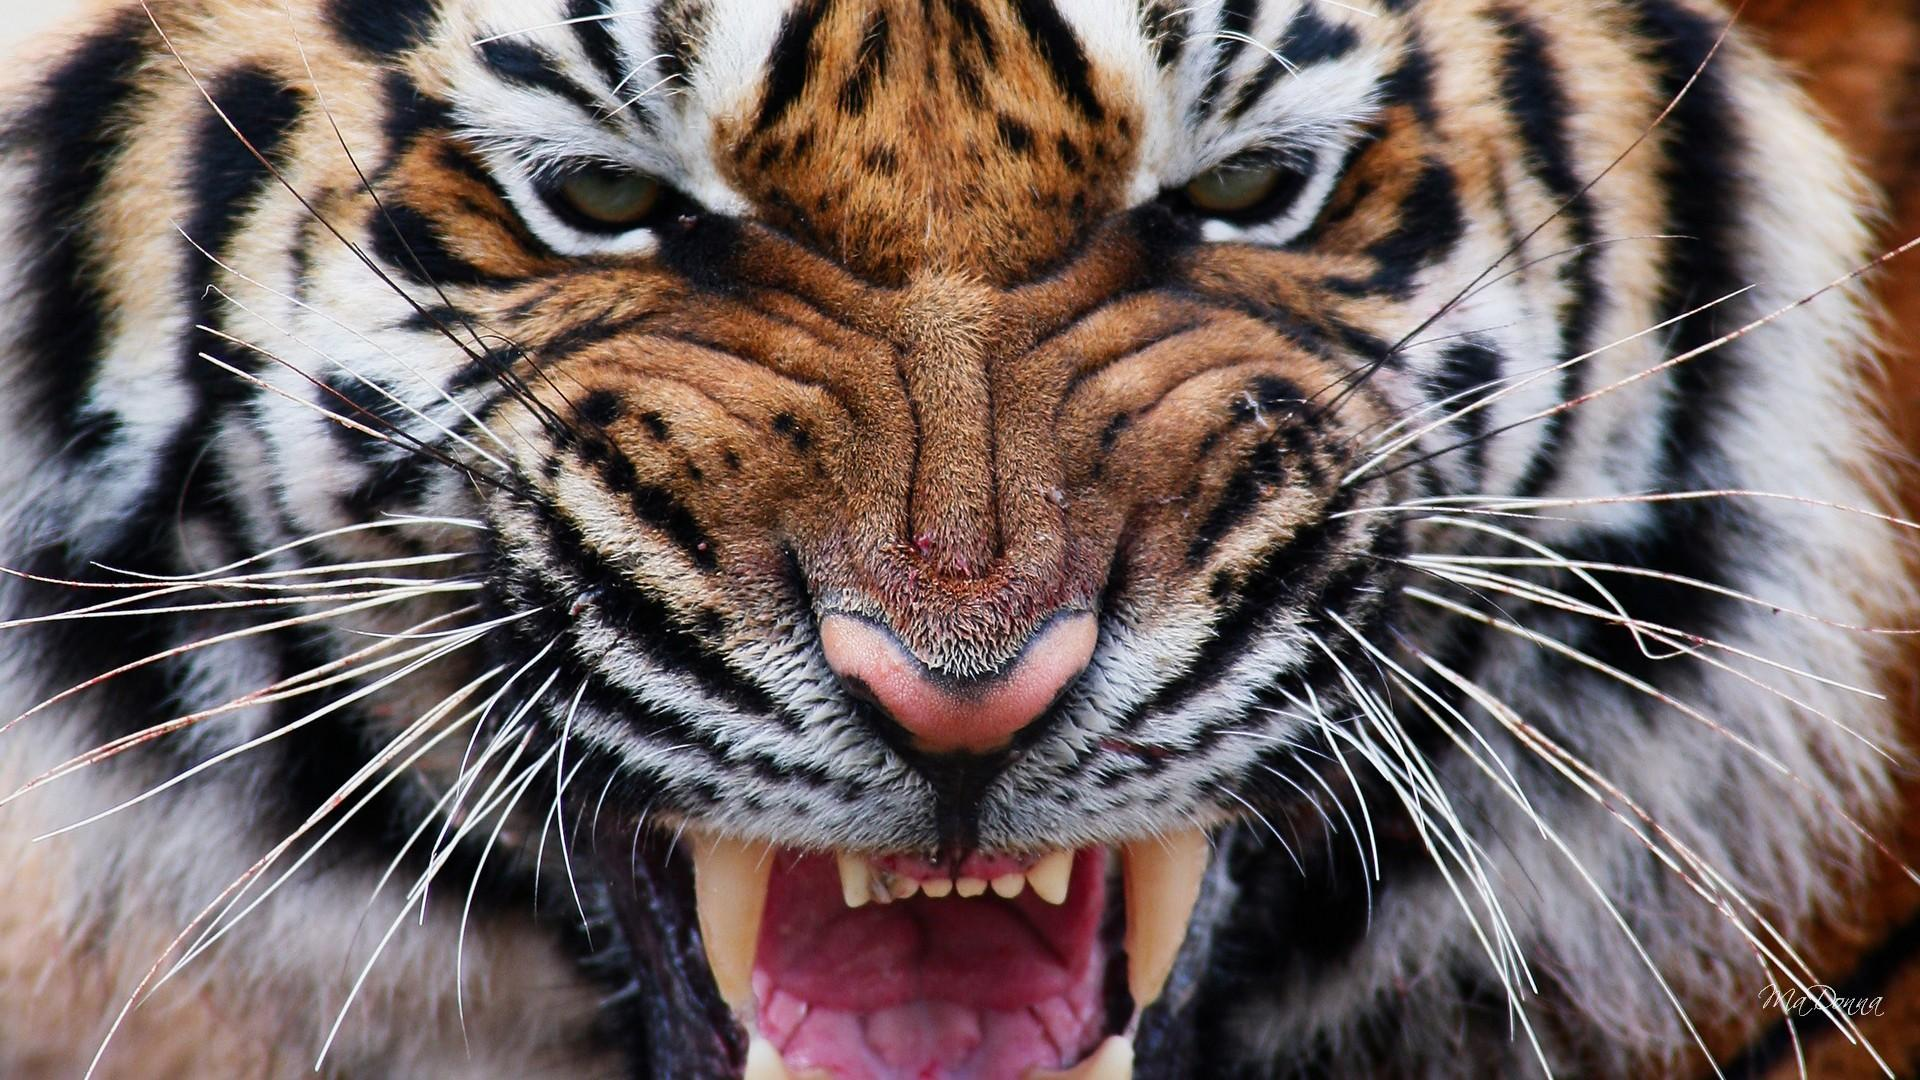 Angry Tiger Eyes Wallpapers Wallpaper Cave